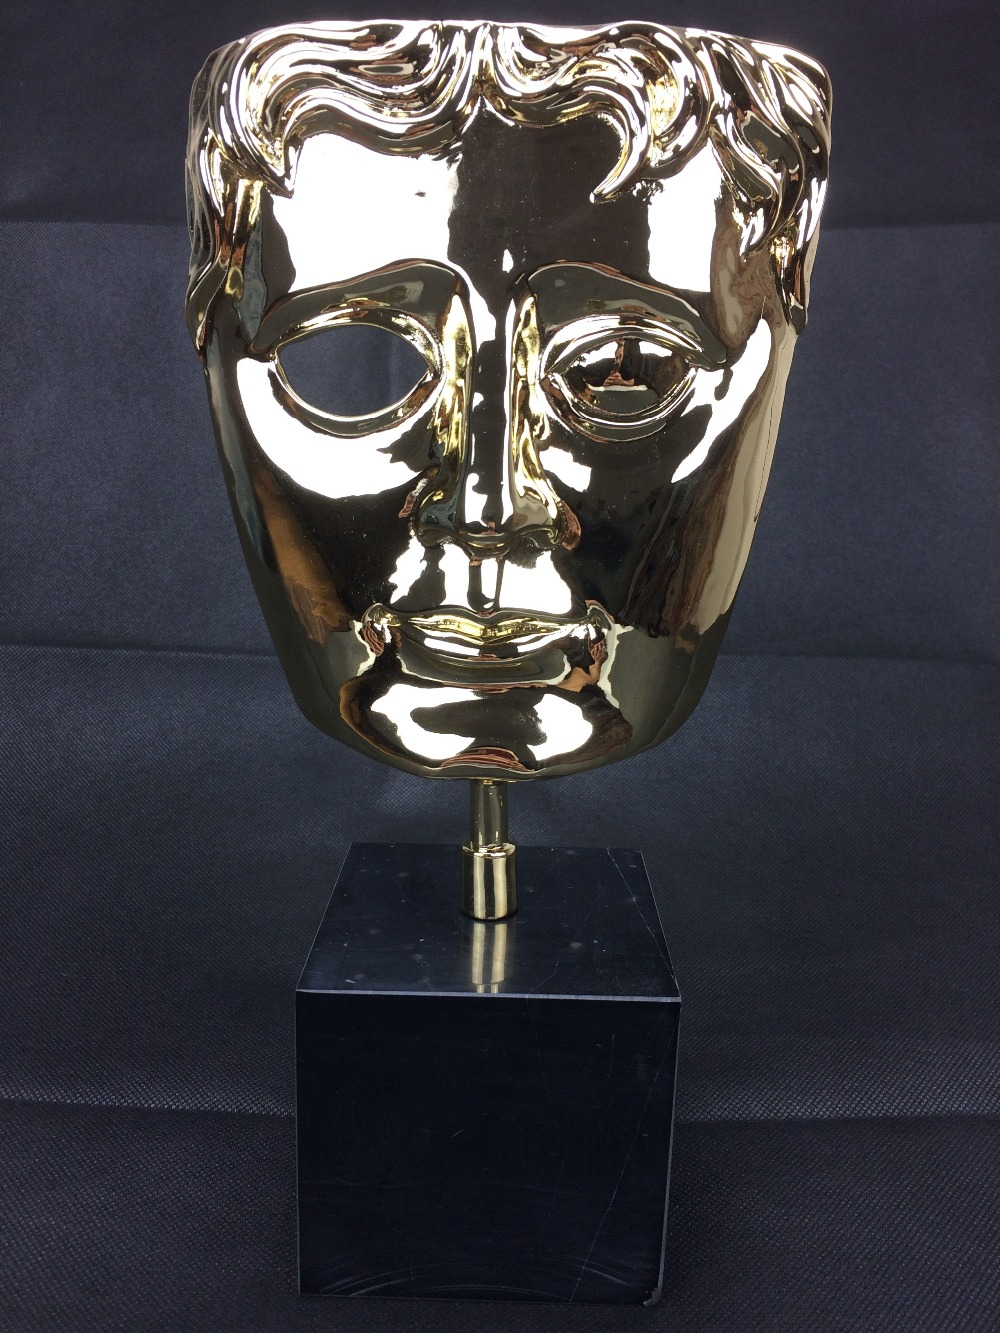 BAFTA Awards, Metal replica BAFTA Awards, British Academy Film Awards